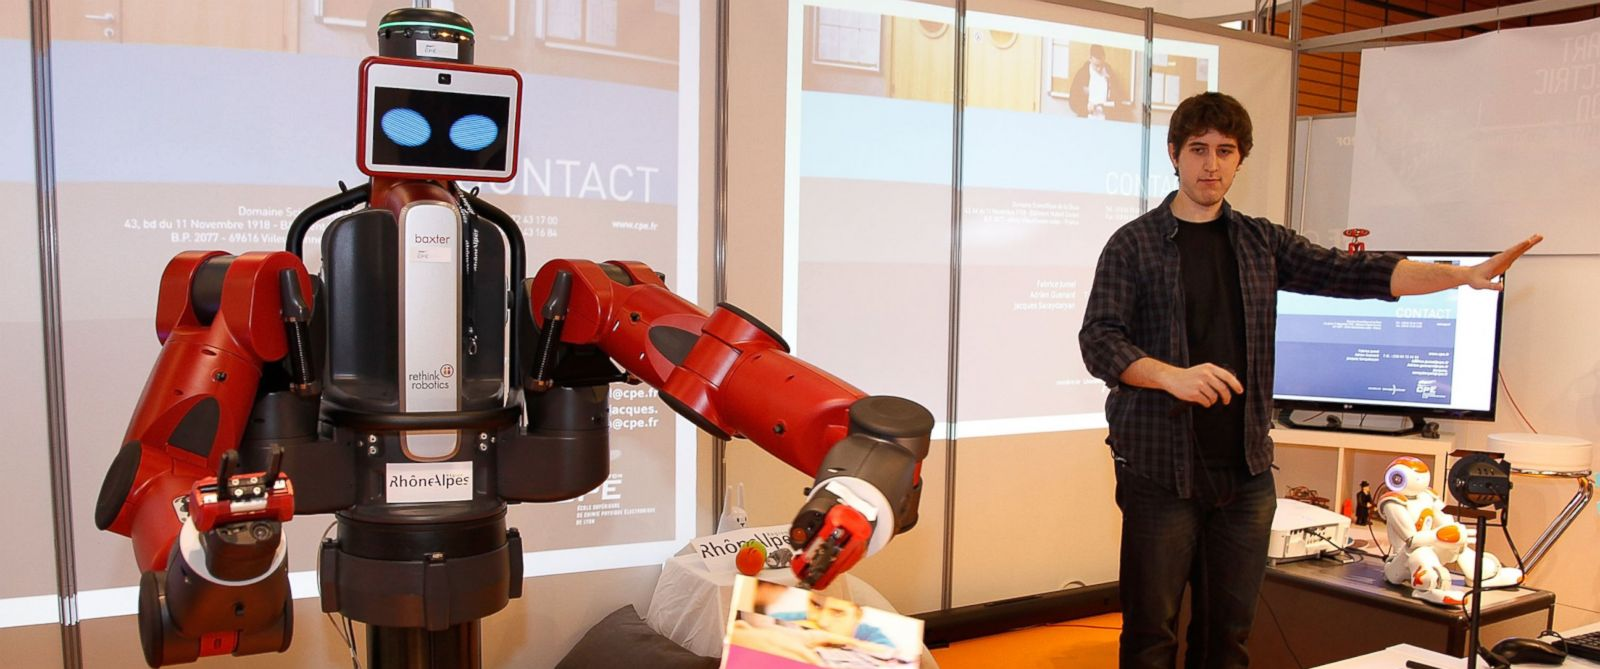 PHOTO: A Baxter manufacturing robot on display at Innorobo International Robotics trade show on March 18, 2014 in Lyon, France.